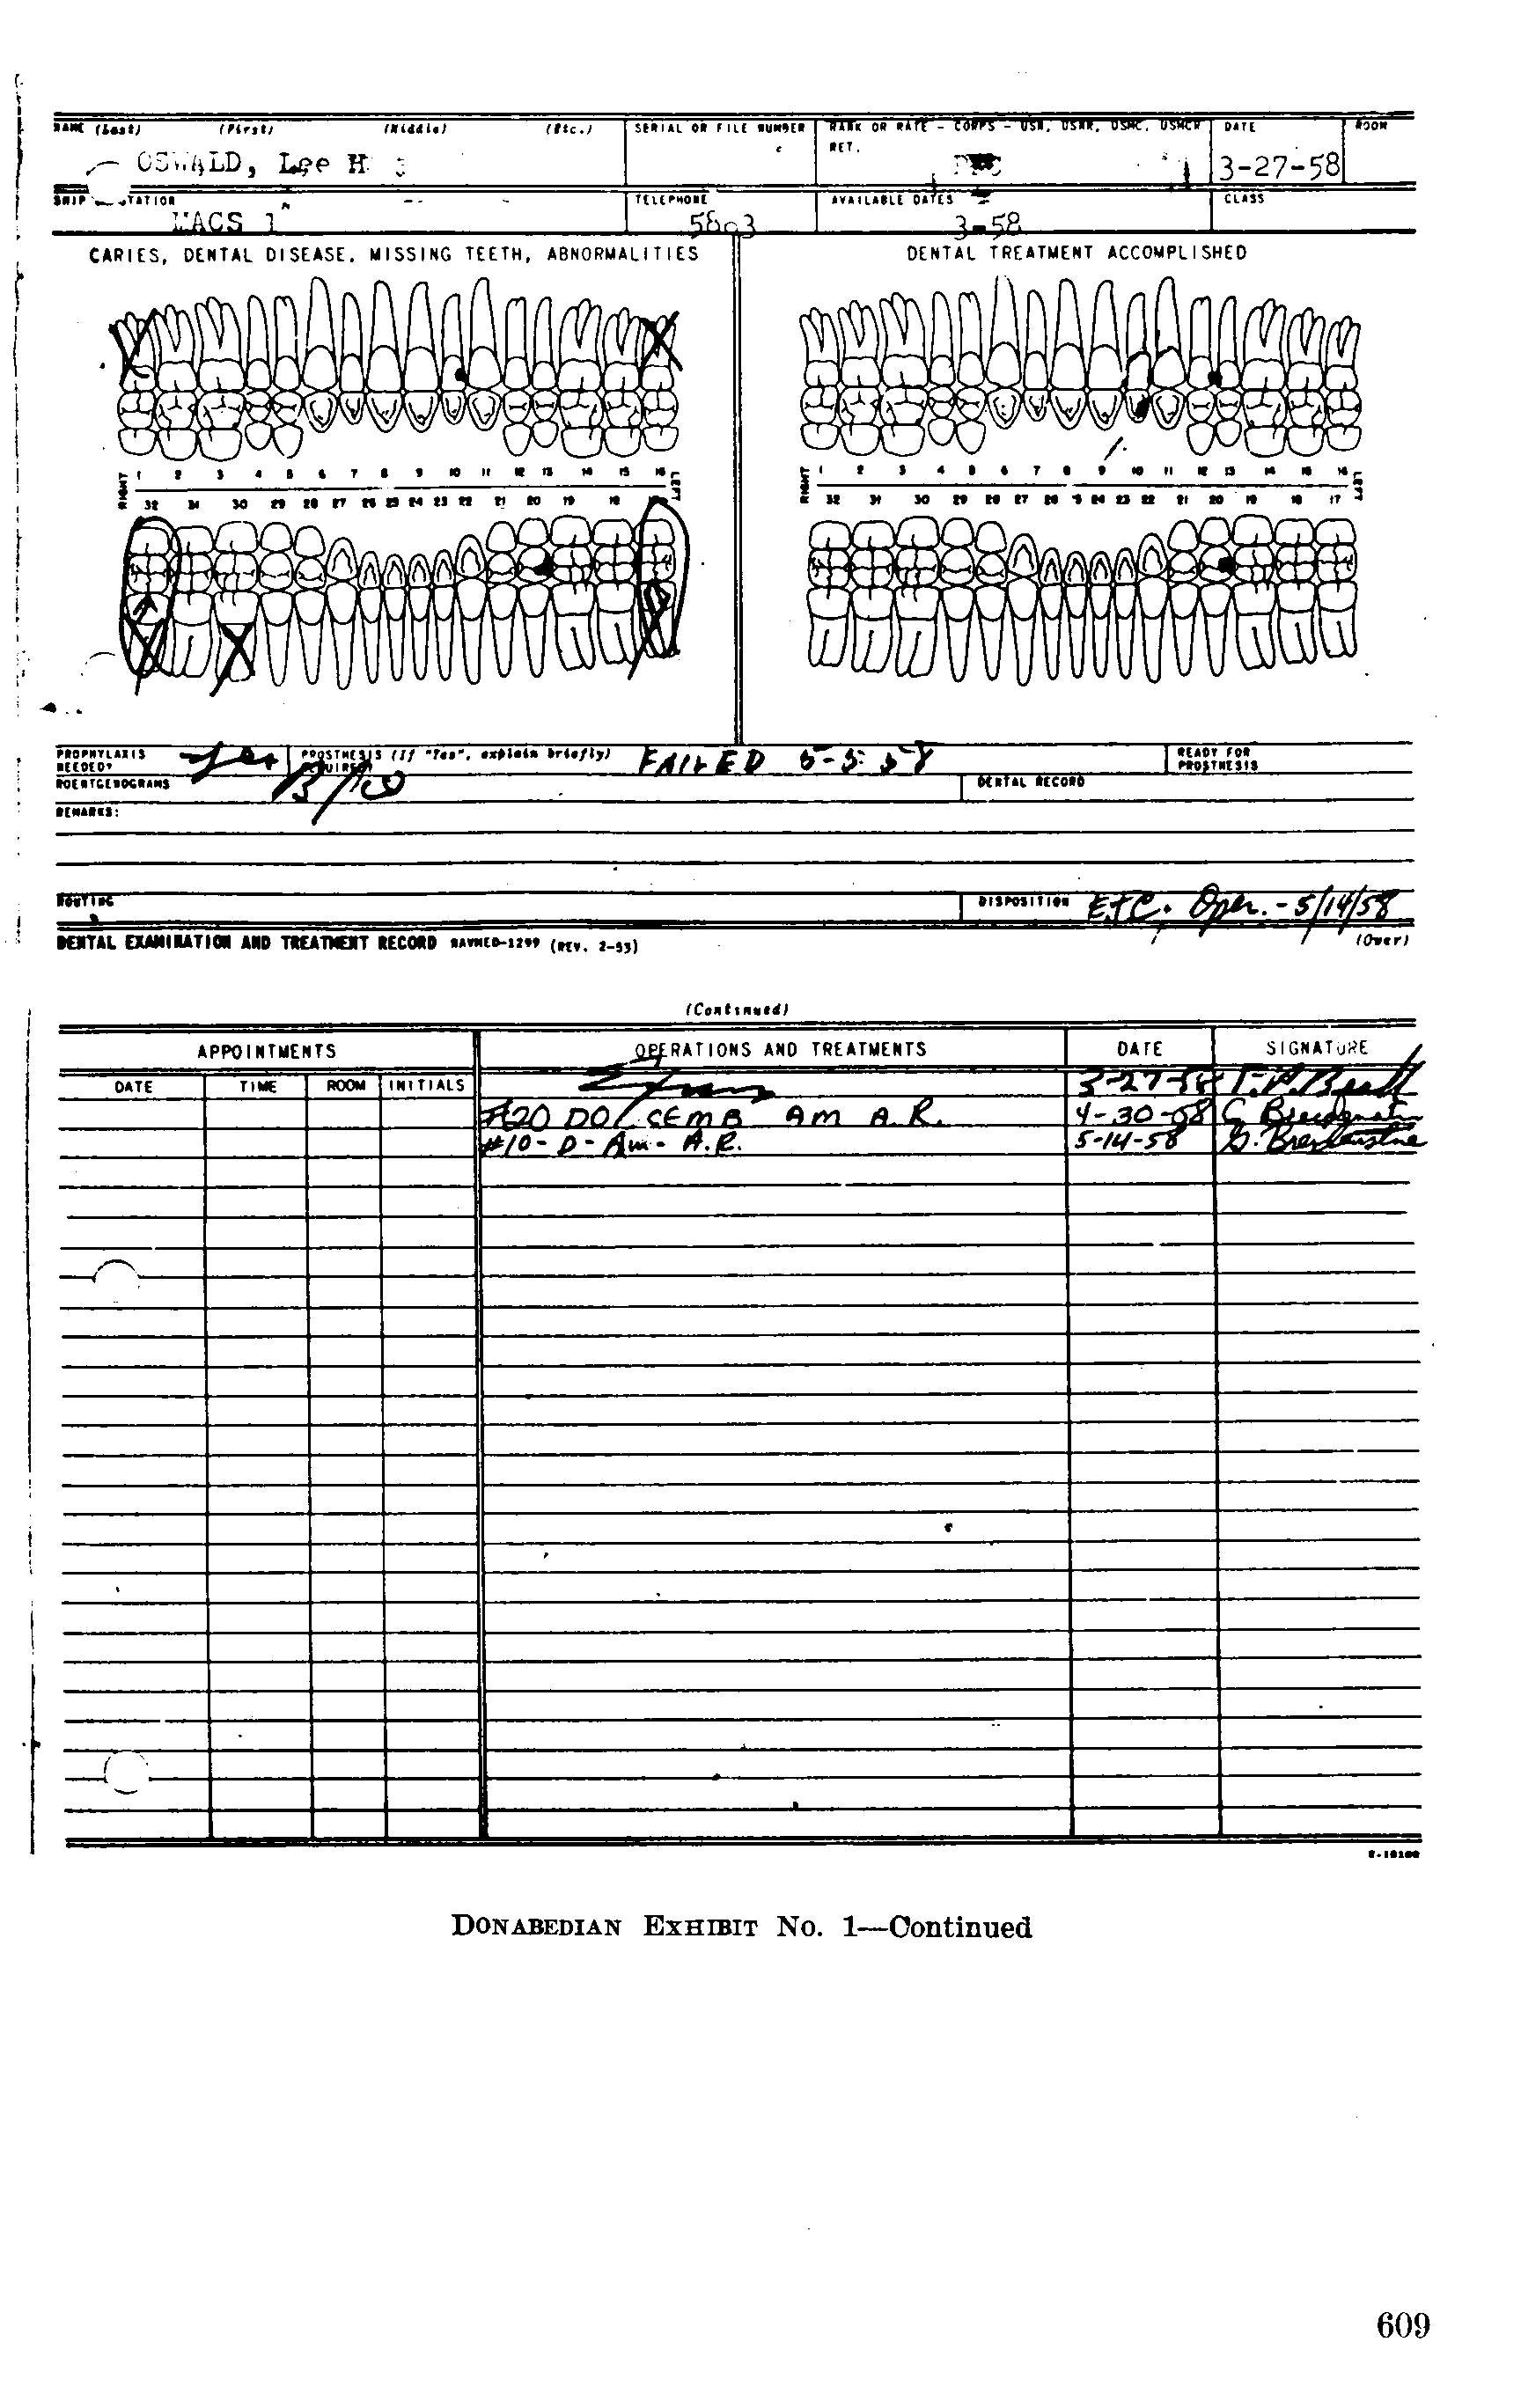 dental_record_1958-03-27.png